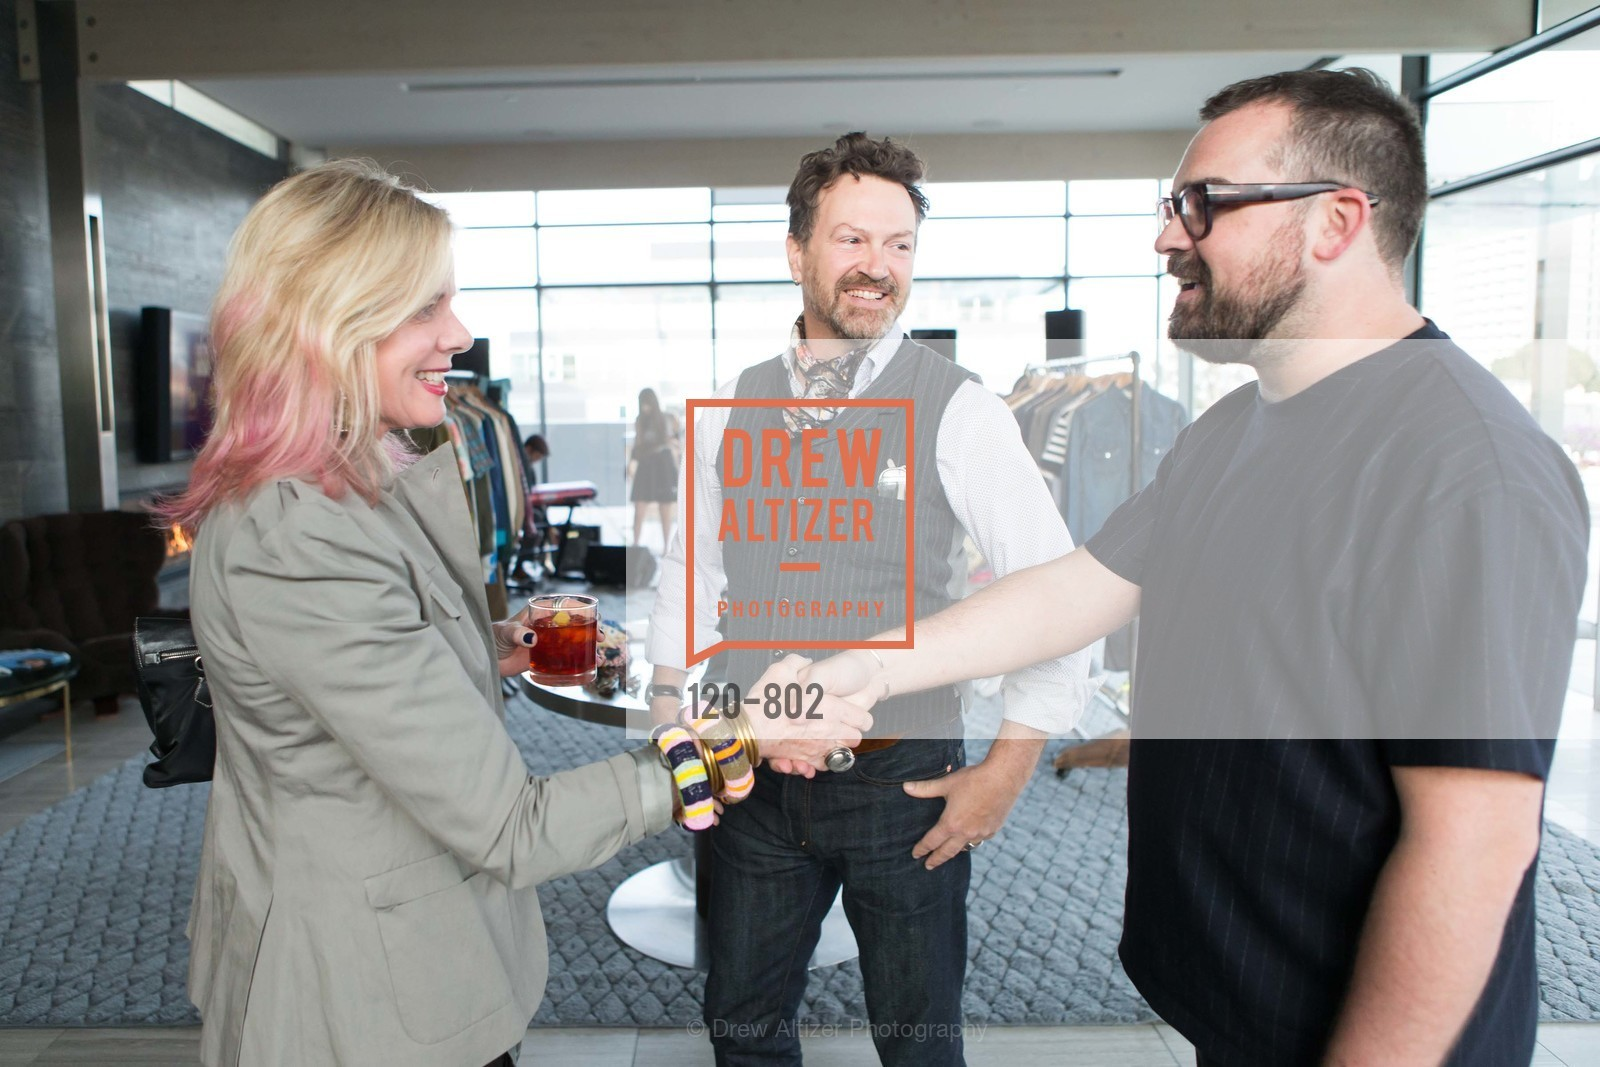 Susan McLaughlin, Paul D'Orleans, Andrew Lord, MR PORTER Celebrate The San Francisco Issue of The Journal, US, April 24th, 2015,Drew Altizer, Drew Altizer Photography, full-service agency, private events, San Francisco photographer, photographer california